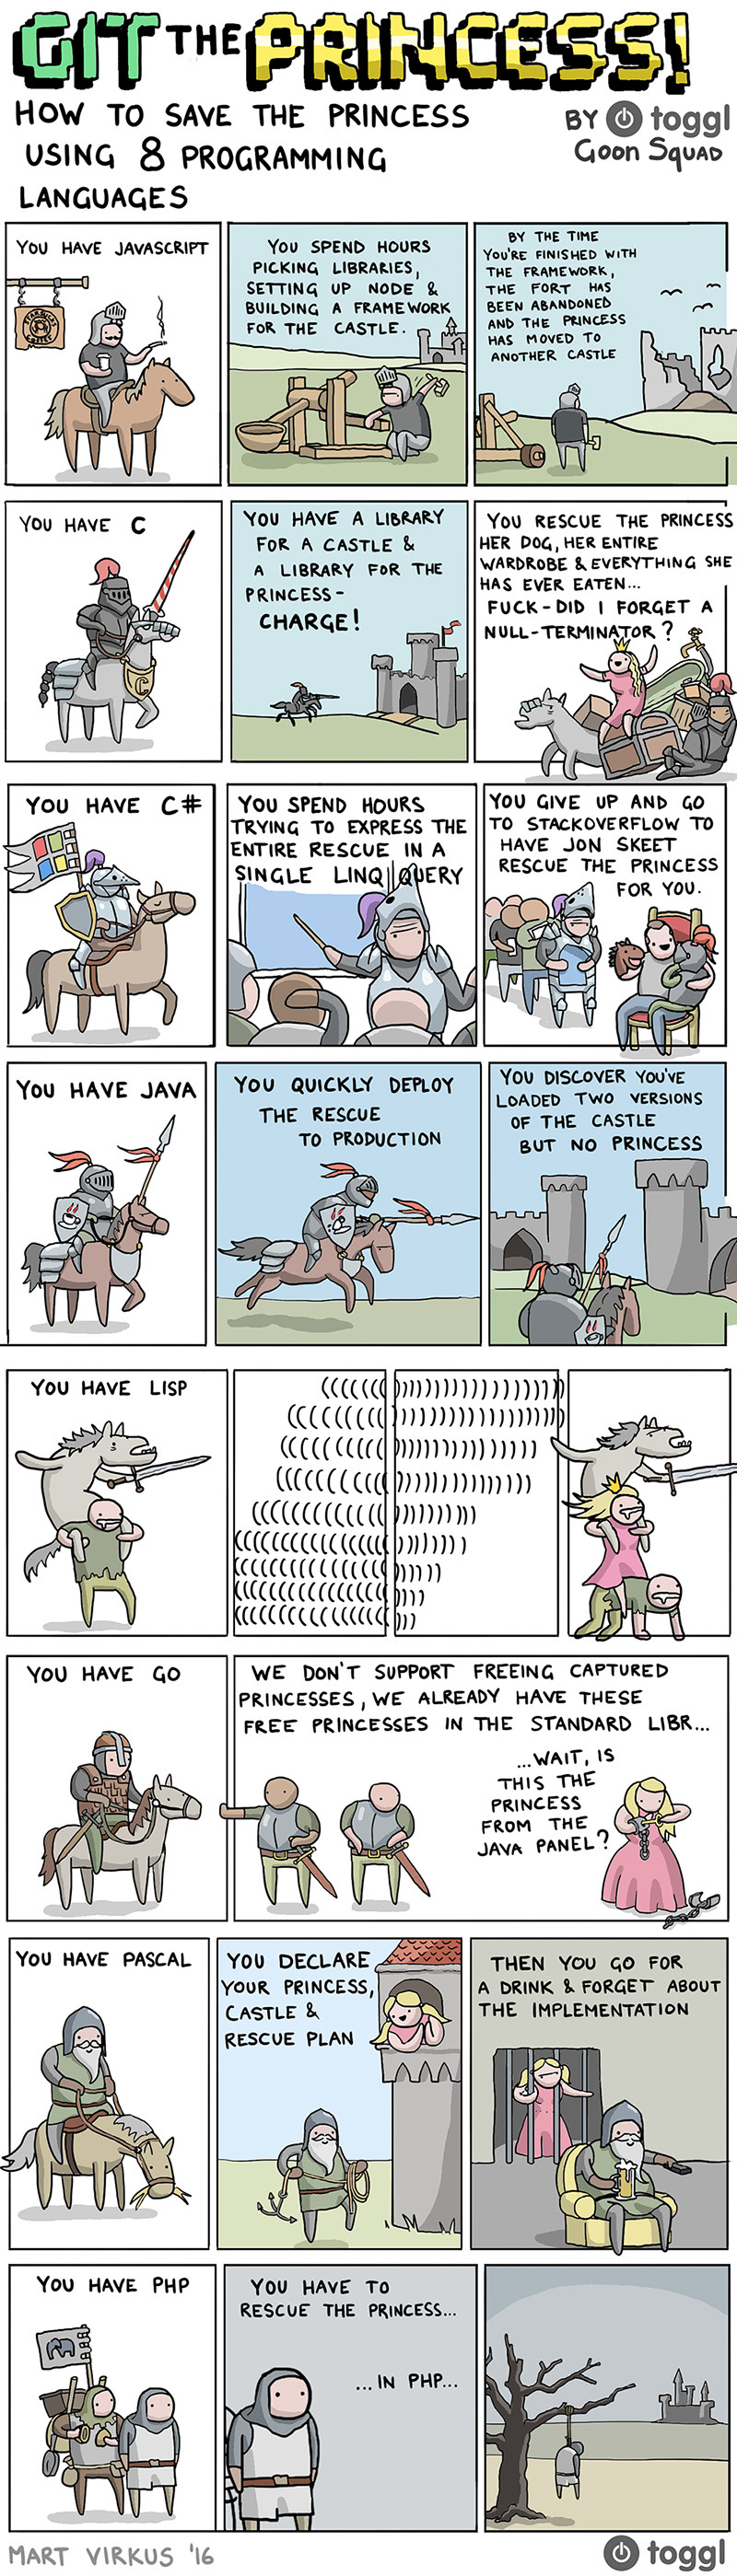 """Rescue the princess. . ail' irt"""" HOW TO SAVE THE PRINCESS USING 8 LANGUAGES YOU HAVE JAVASCRIPT You SPEND HOURS LIBRARYS, SETTING UP MODE ' BUILDING A FRAMEWORK"""